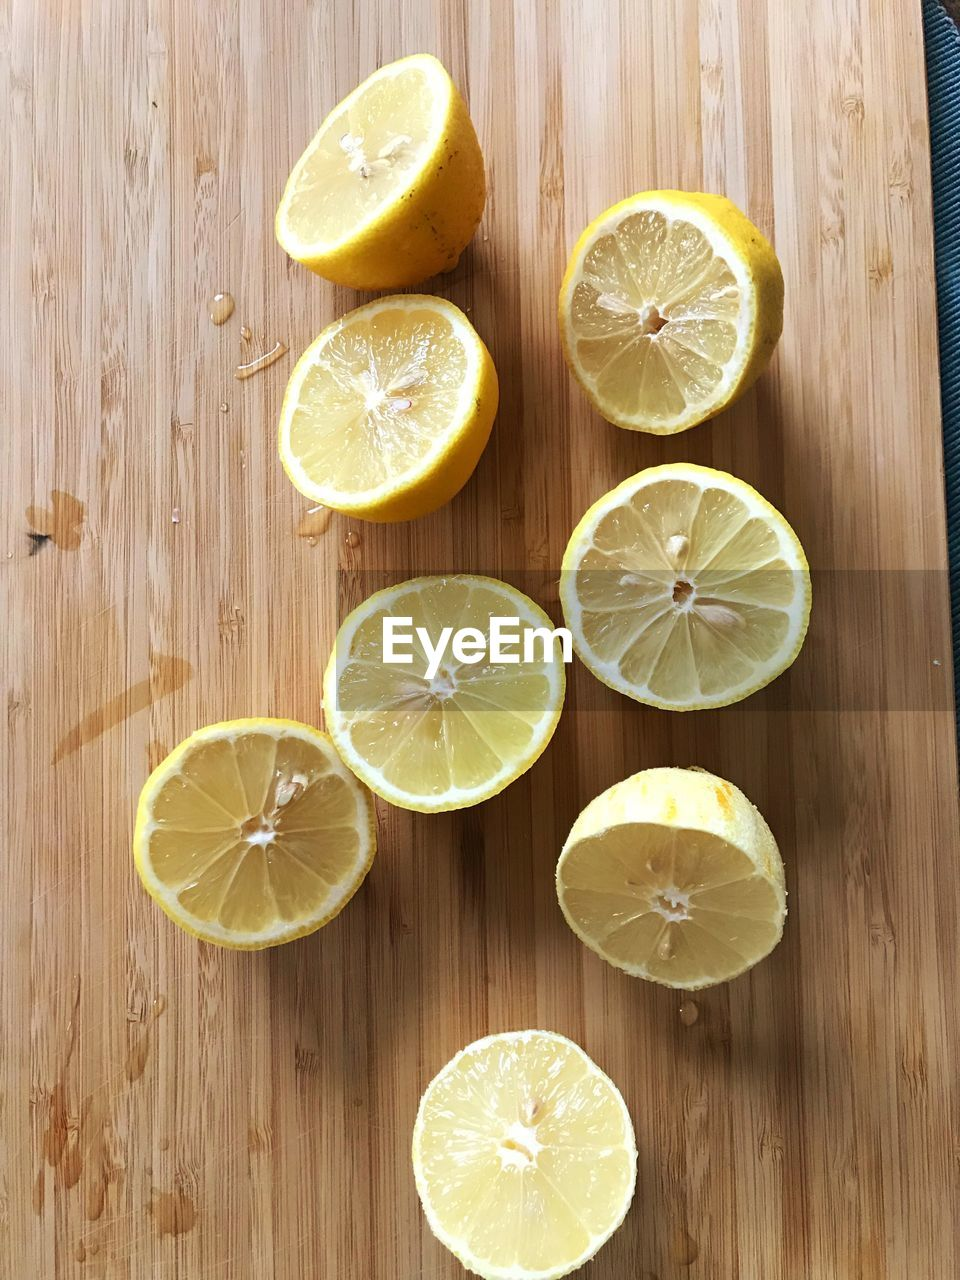 citrus fruit, food and drink, fruit, food, slice, healthy eating, freshness, lemon, wellbeing, table, wood - material, no people, still life, indoors, lime, yellow, directly above, high angle view, cross section, close-up, orange, sour taste